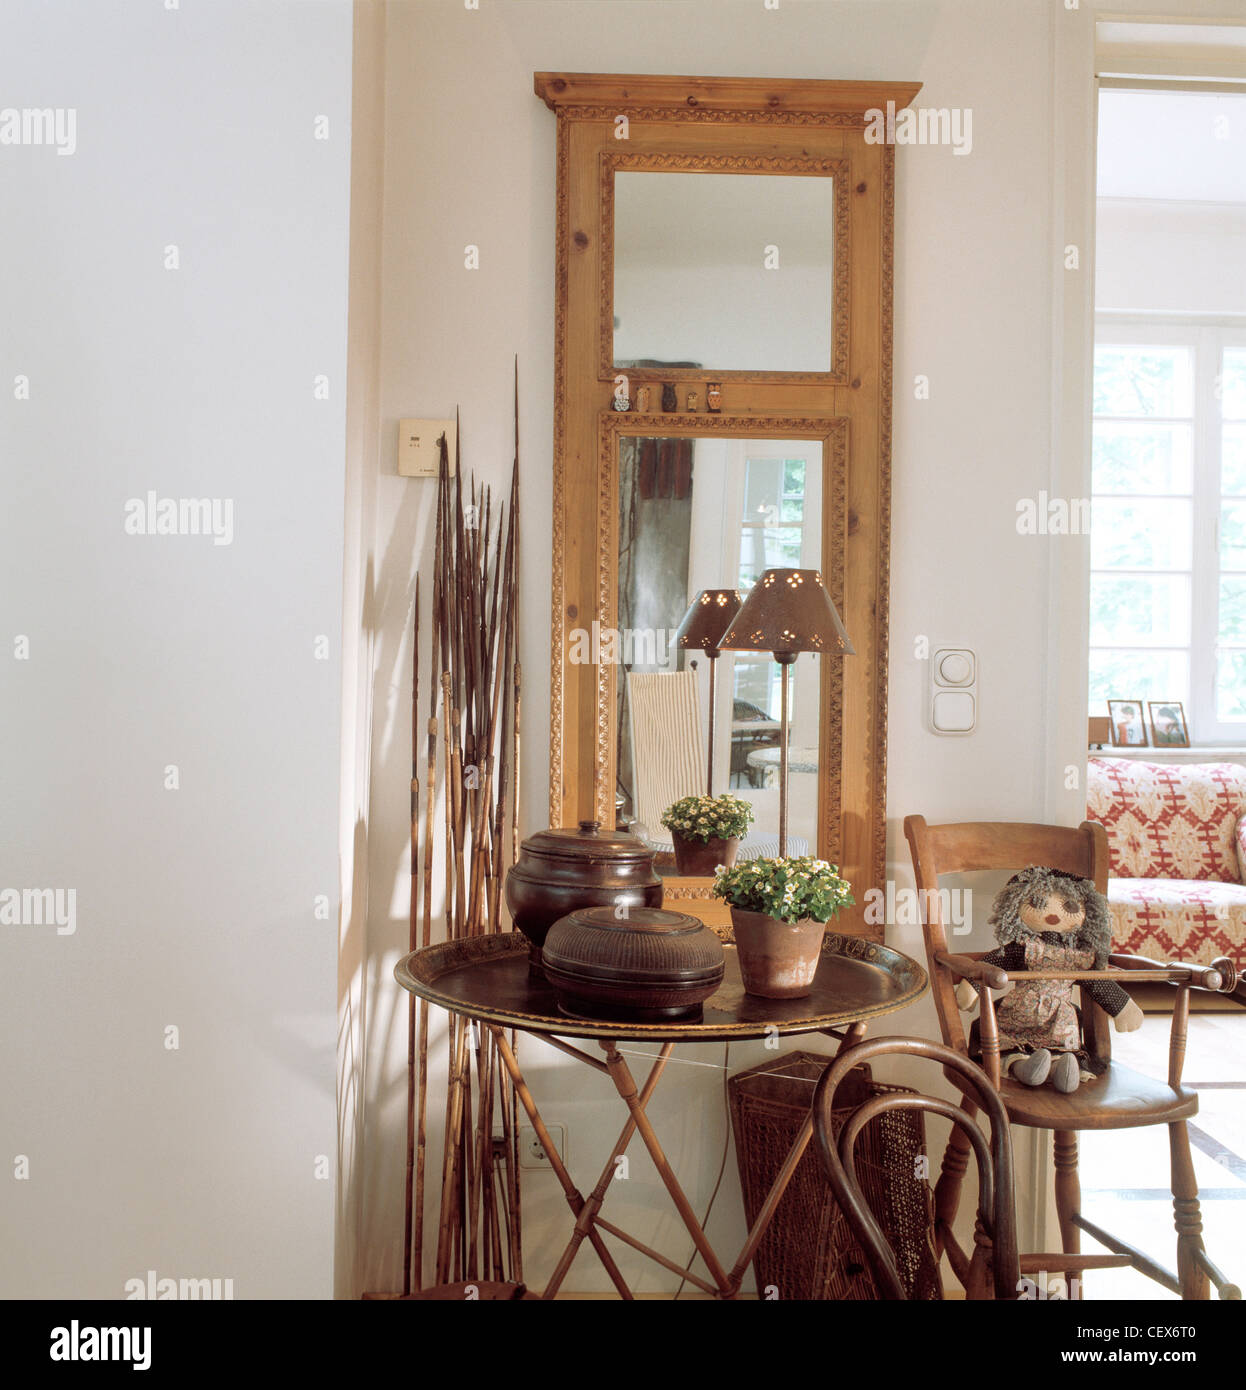 REAL HOMESDetail of hallway, with wood framed mirror, small table and chair, high chair, small lamp and decorative - Stock Image